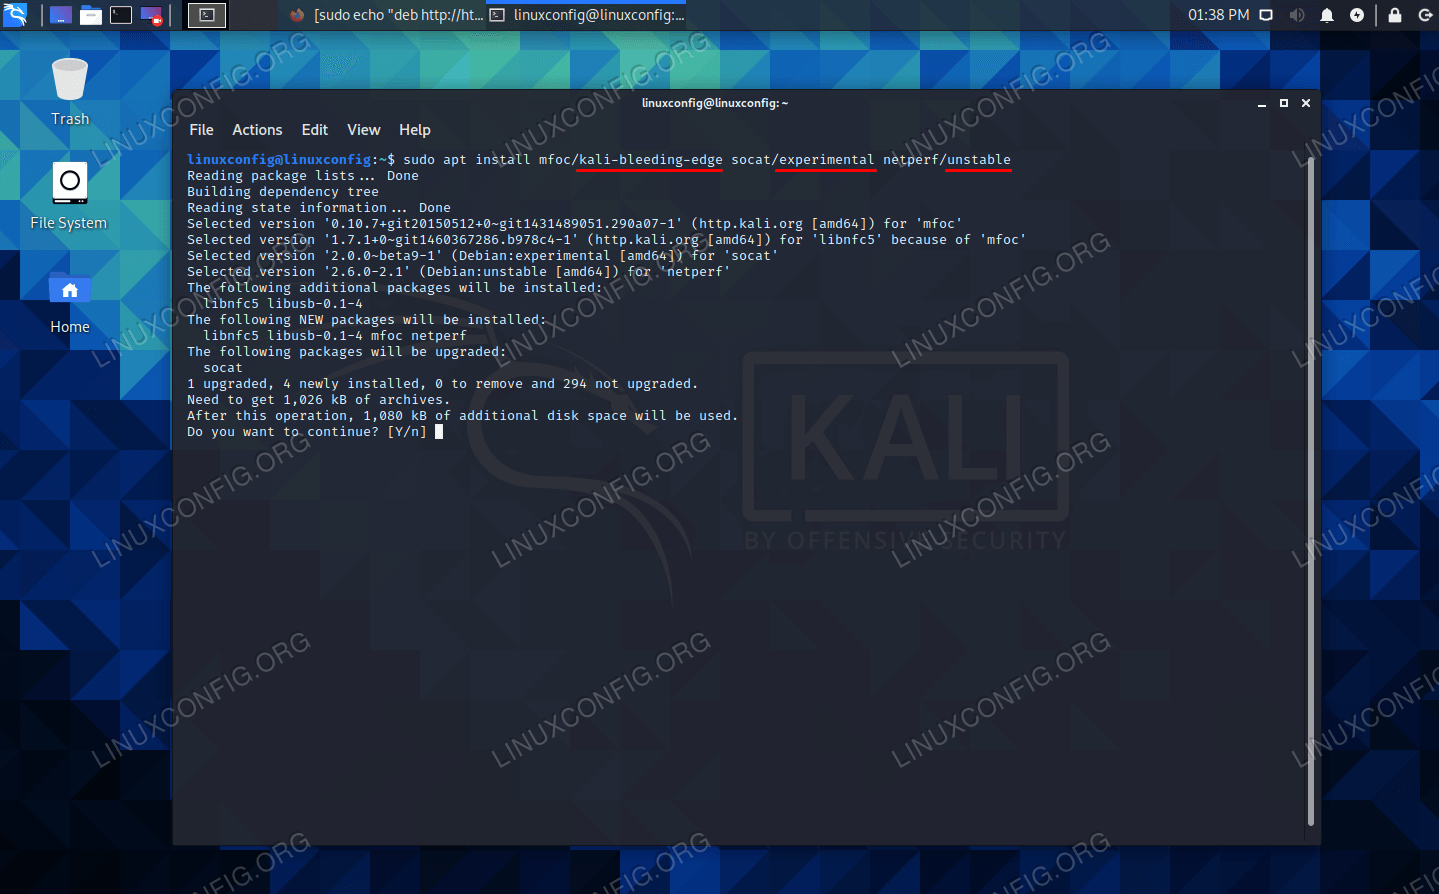 Installing packages from the bleeding edge, unstable, and experimental repos on Kali